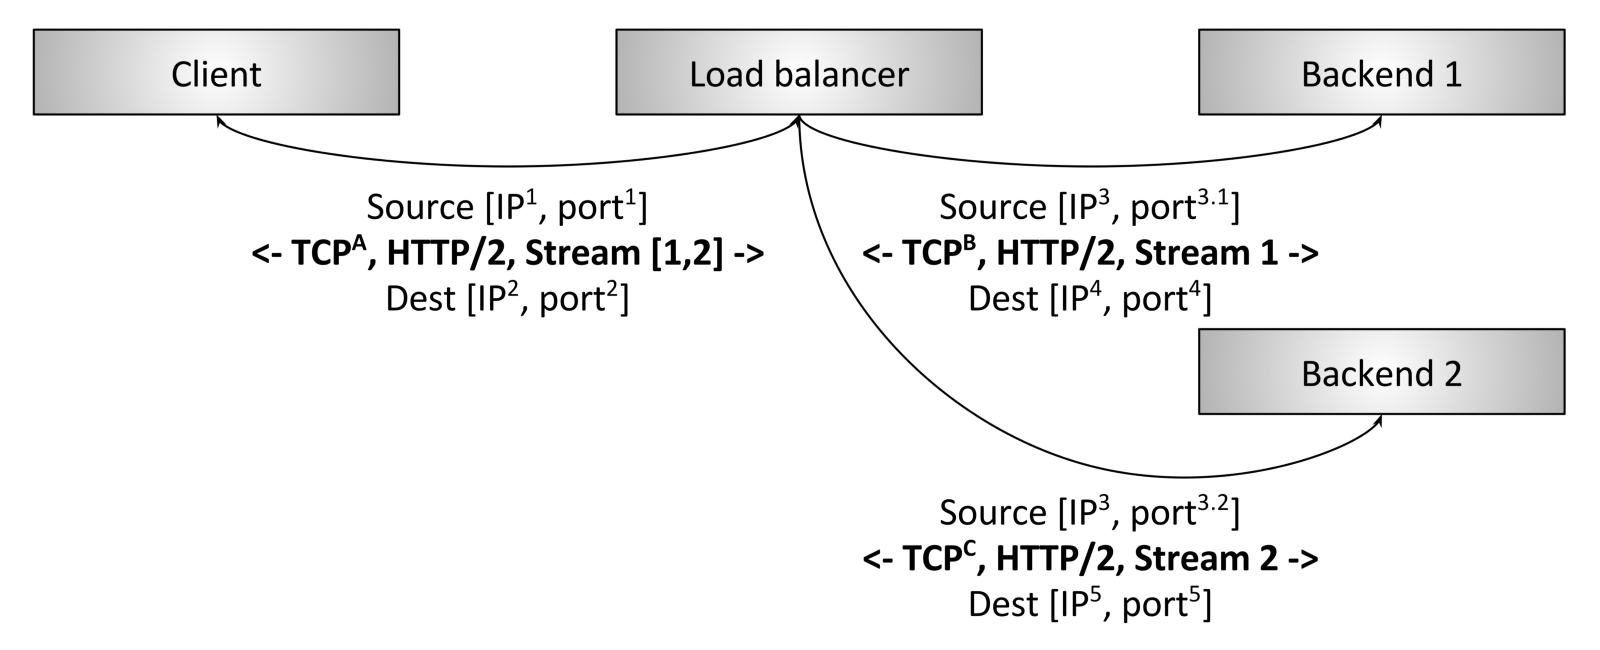 hight resolution of figure 3 http 2 l7 termination load balancing